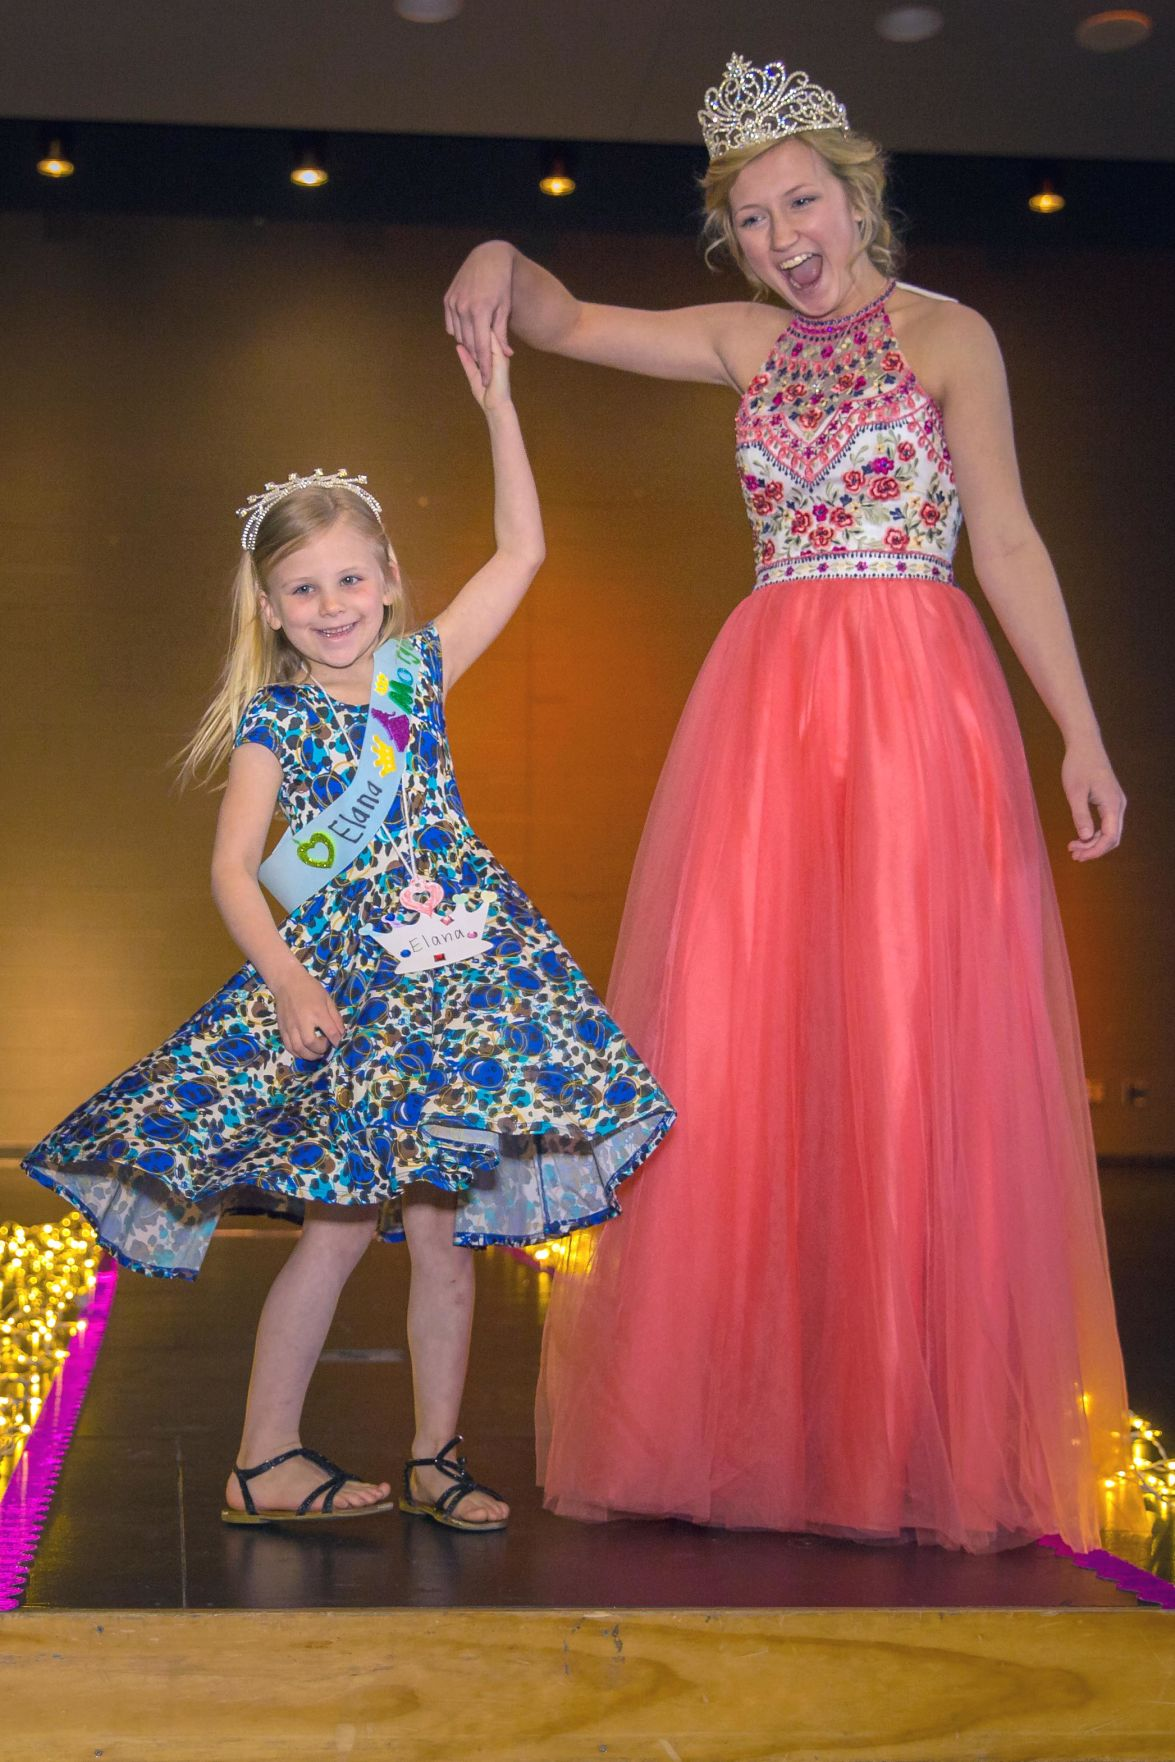 Princesses invited to party | News | isanti-chisagocountystar.com